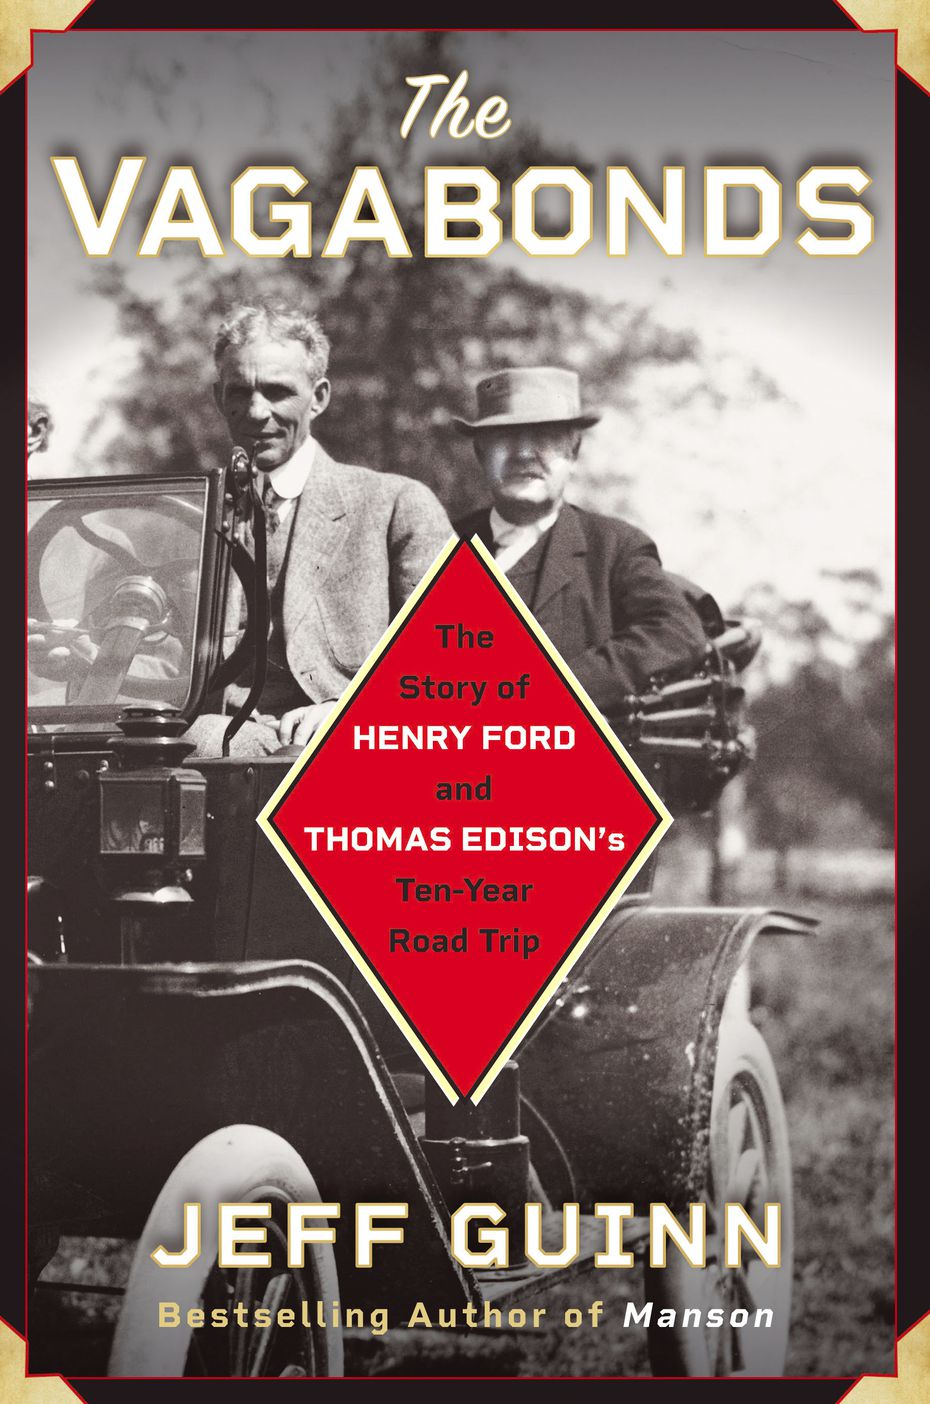 The Vagabonds: The Story of Henry Ford and Thomas Edison's Ten-Year Road Trip, by Jeff Guinn